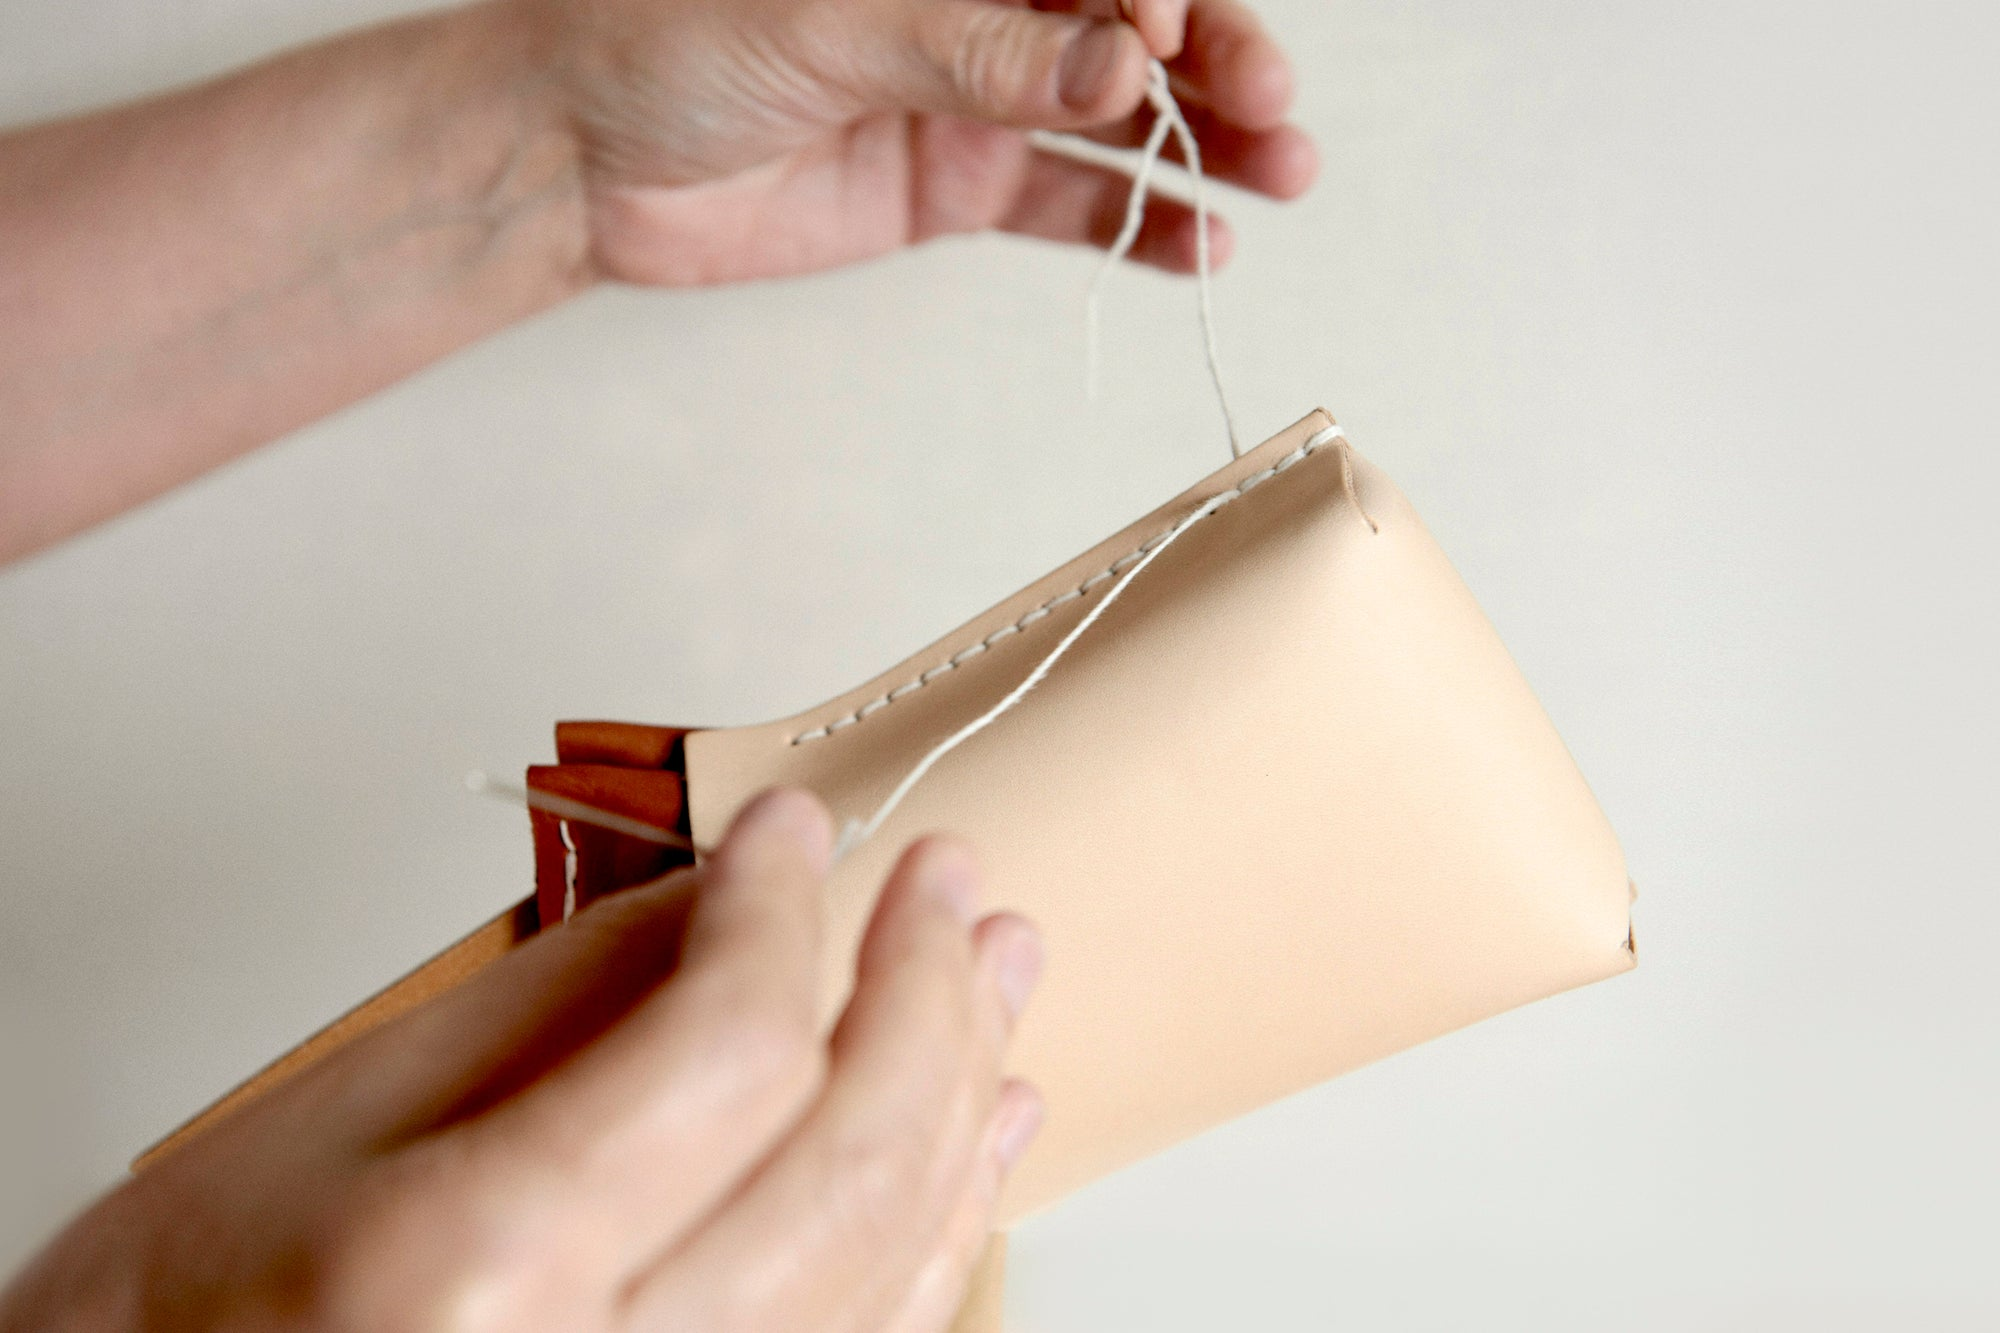 Leather Workshops: Benefits